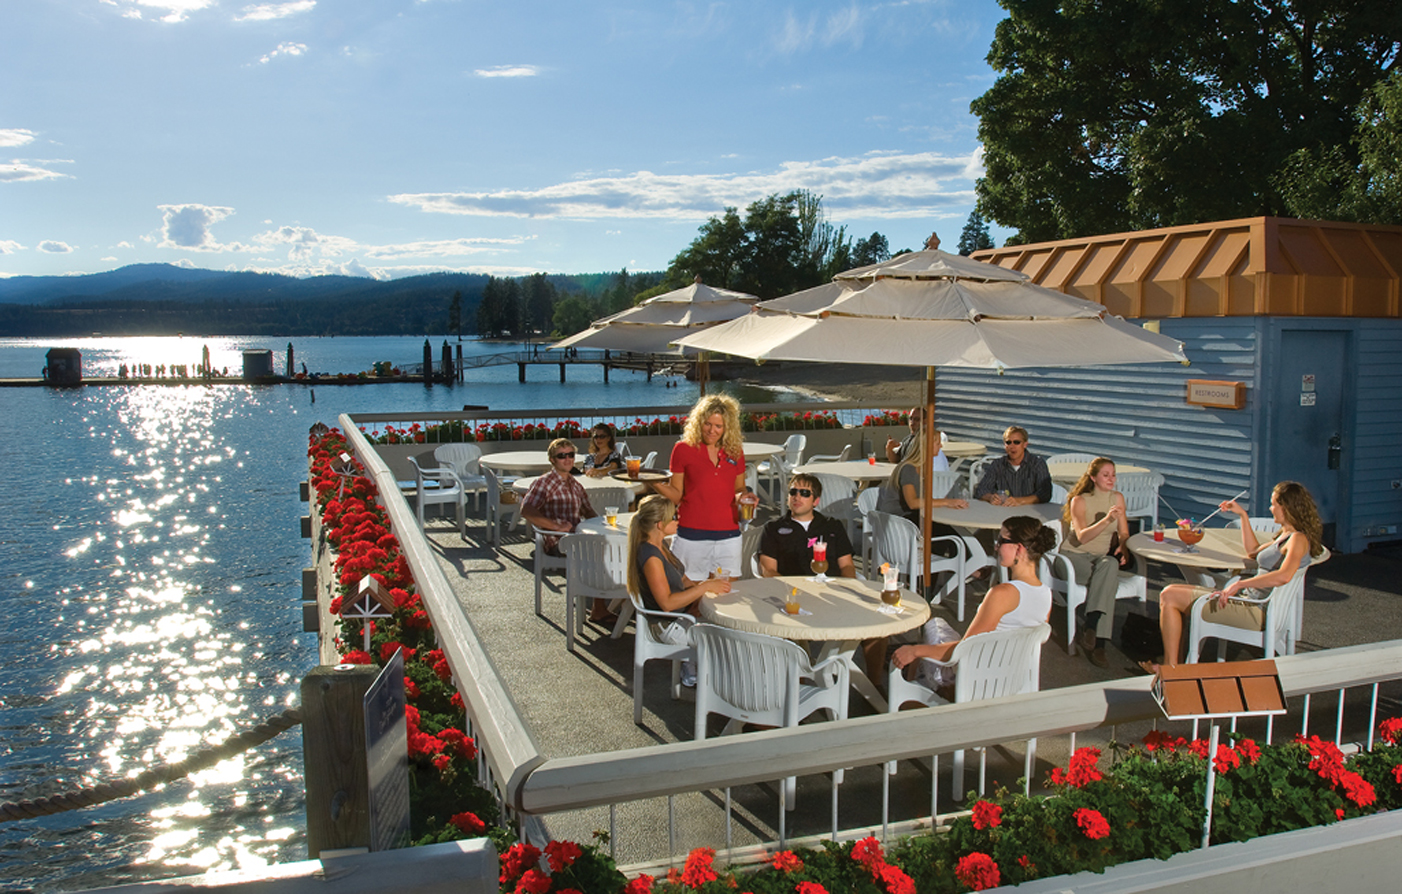 Special Offers:      The Coeur d'Alene Resort  in Coeur d'Alene